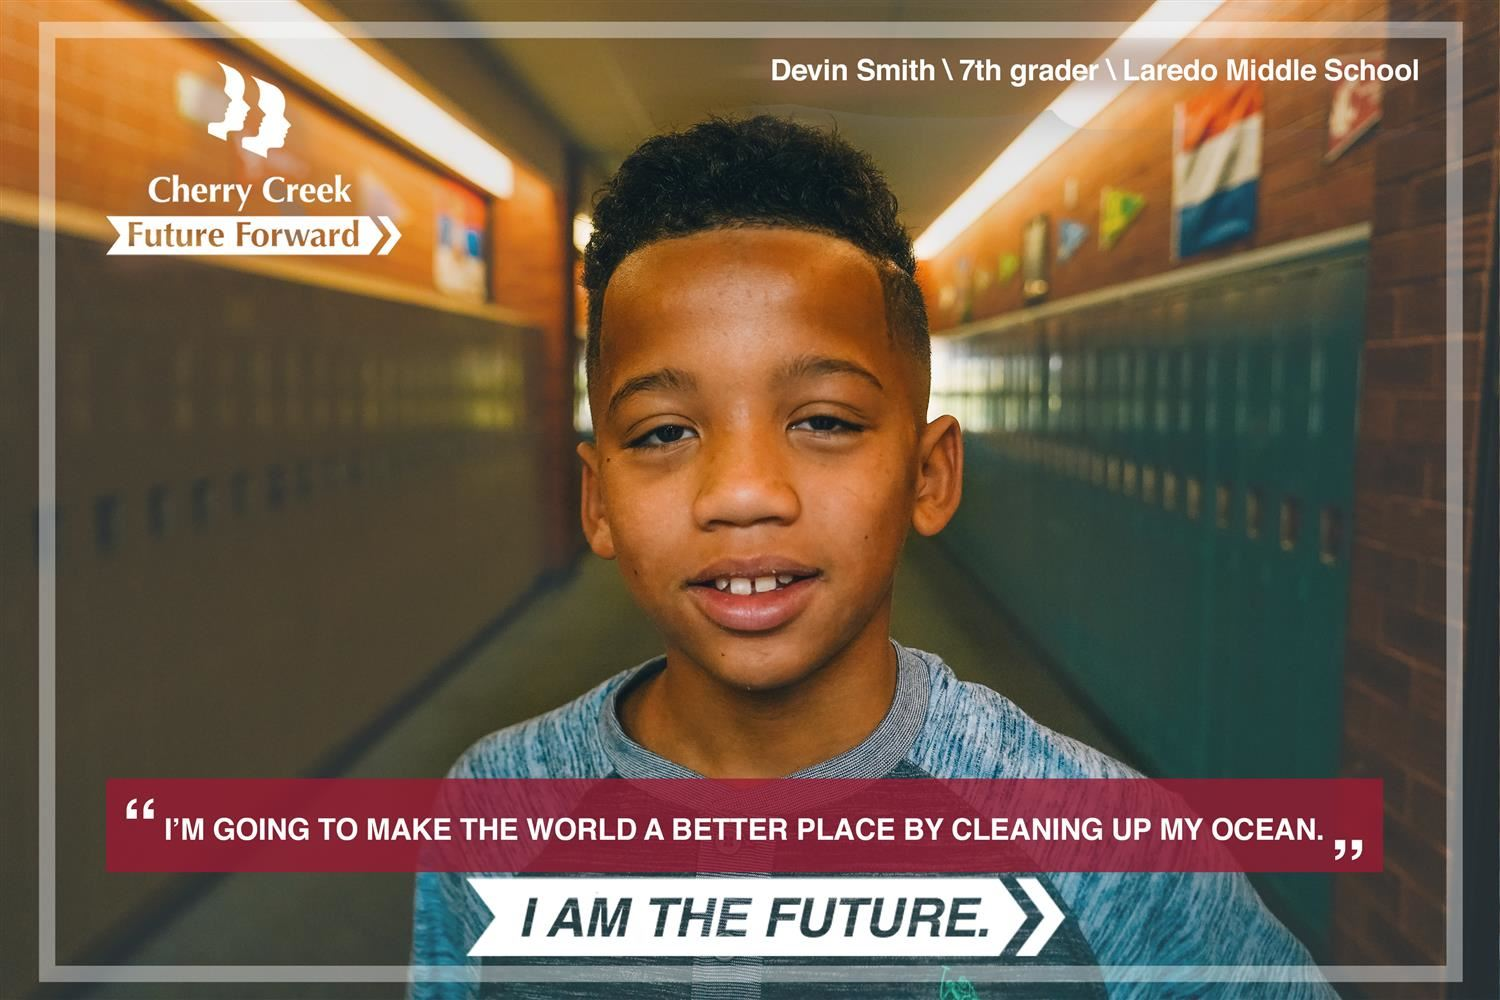 photo of Devin Smith, 7th grader at Lardeo Middle School